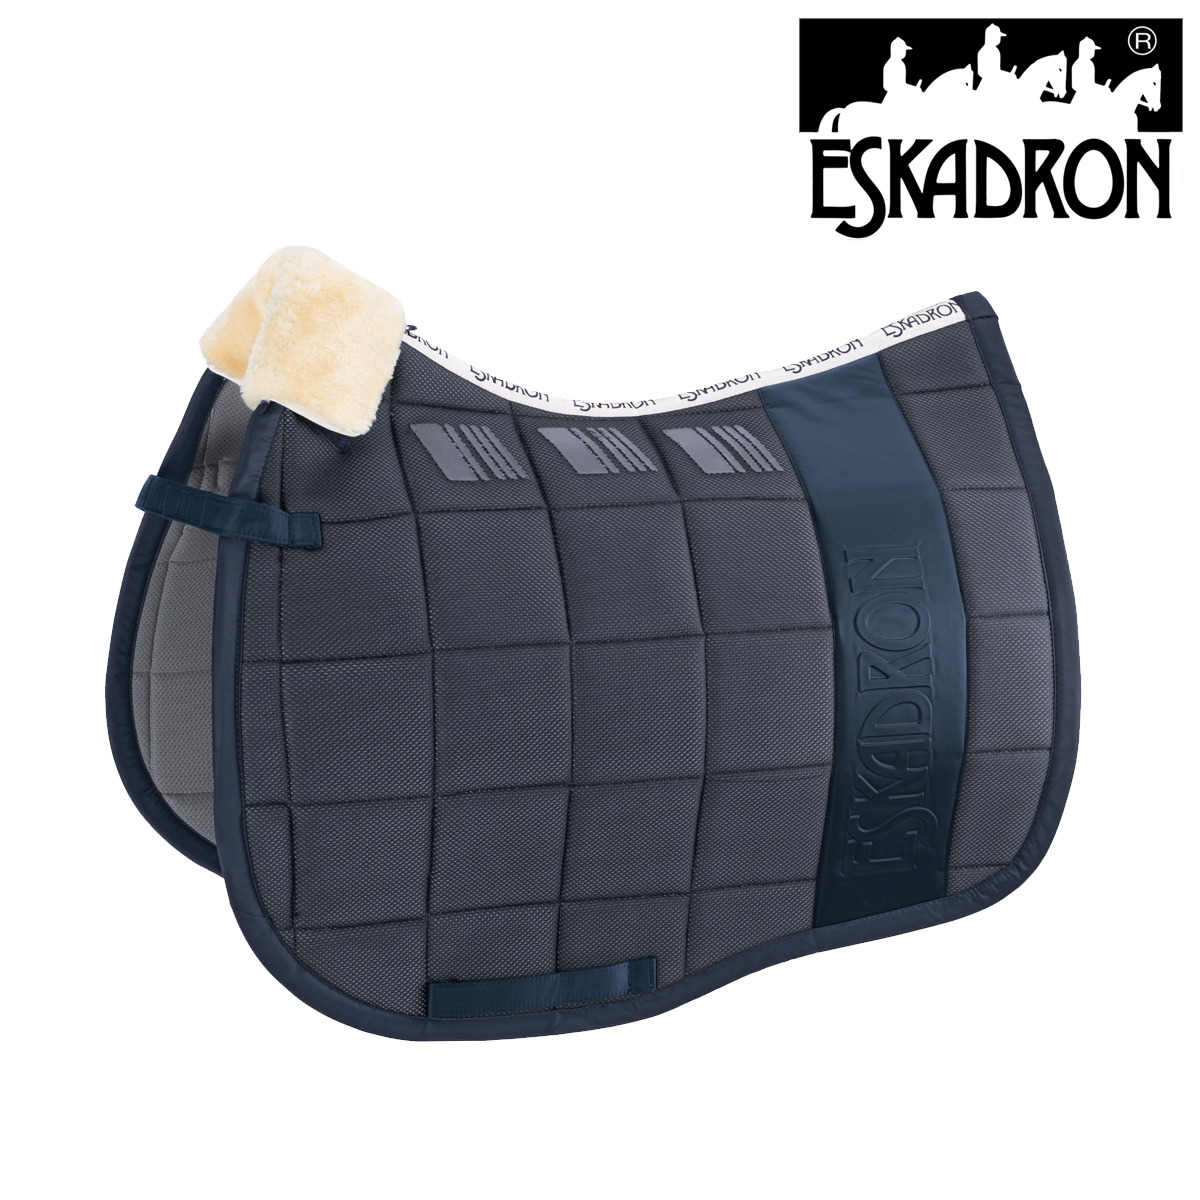 Eskadron InnoPad Mesh saddlepad (Classic Sports Ltd. SS19)  FREE UK LIVRAISON